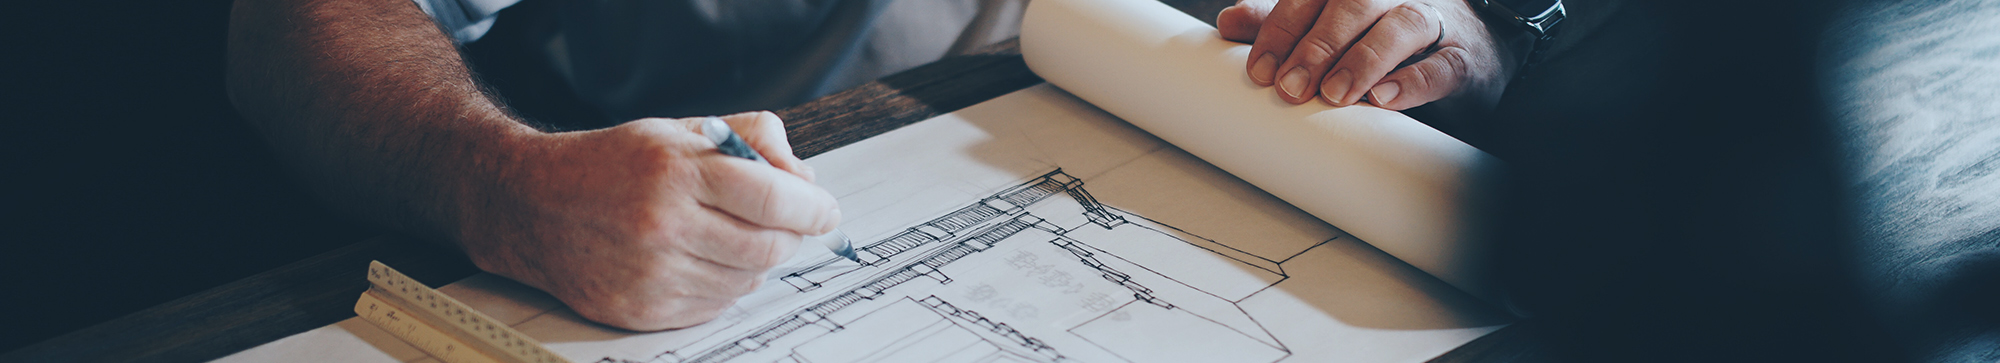 Man working on blueprint